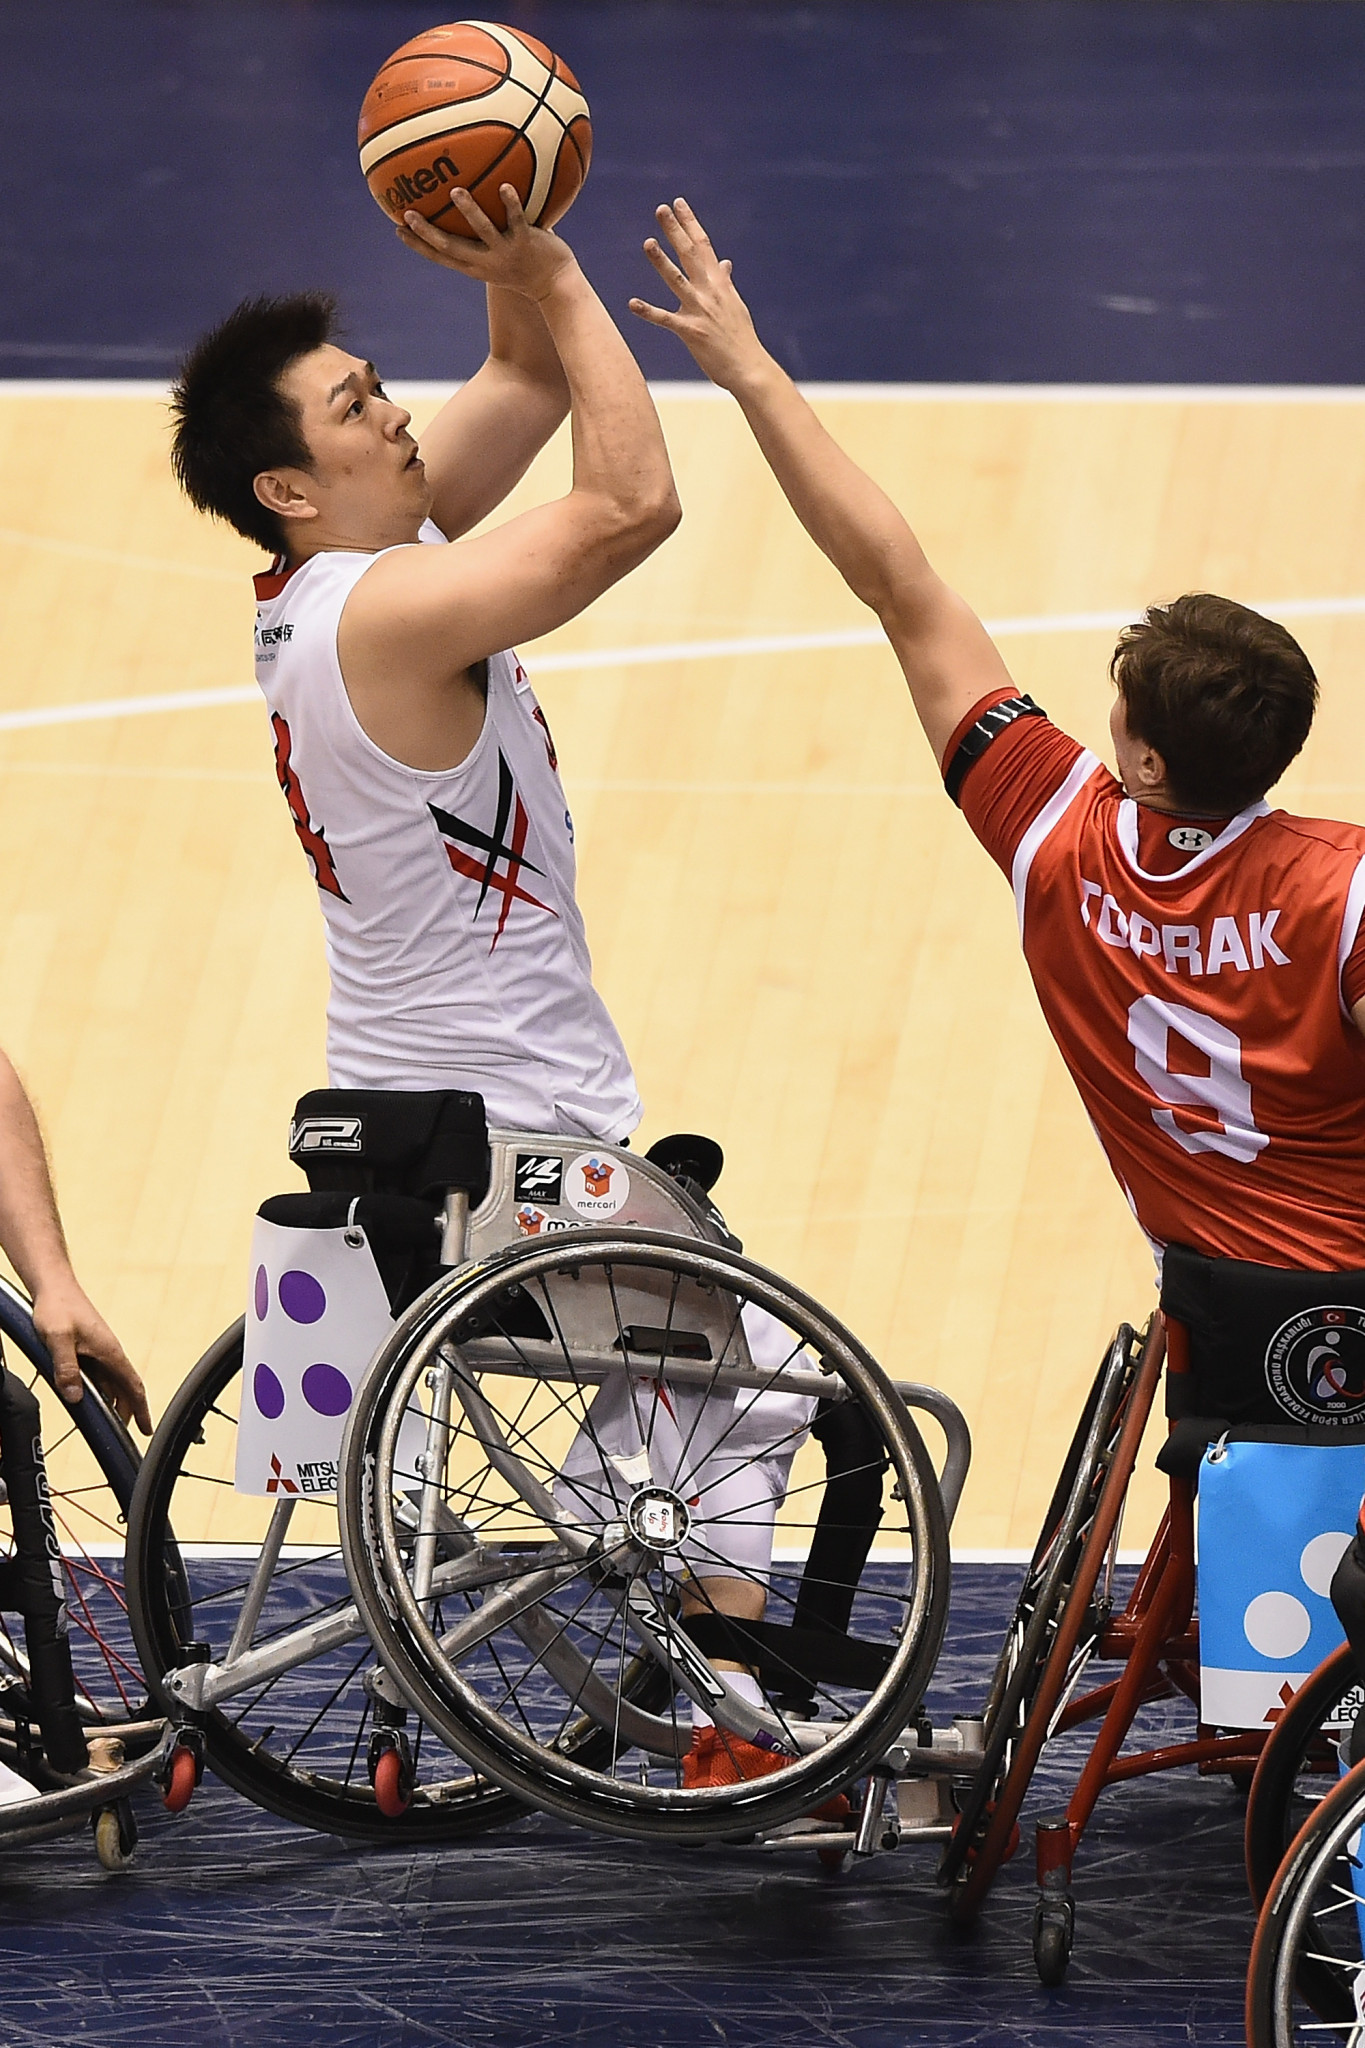 Japan will compete in both the men's and women's events at Jakarta 2018 ©Getty Images